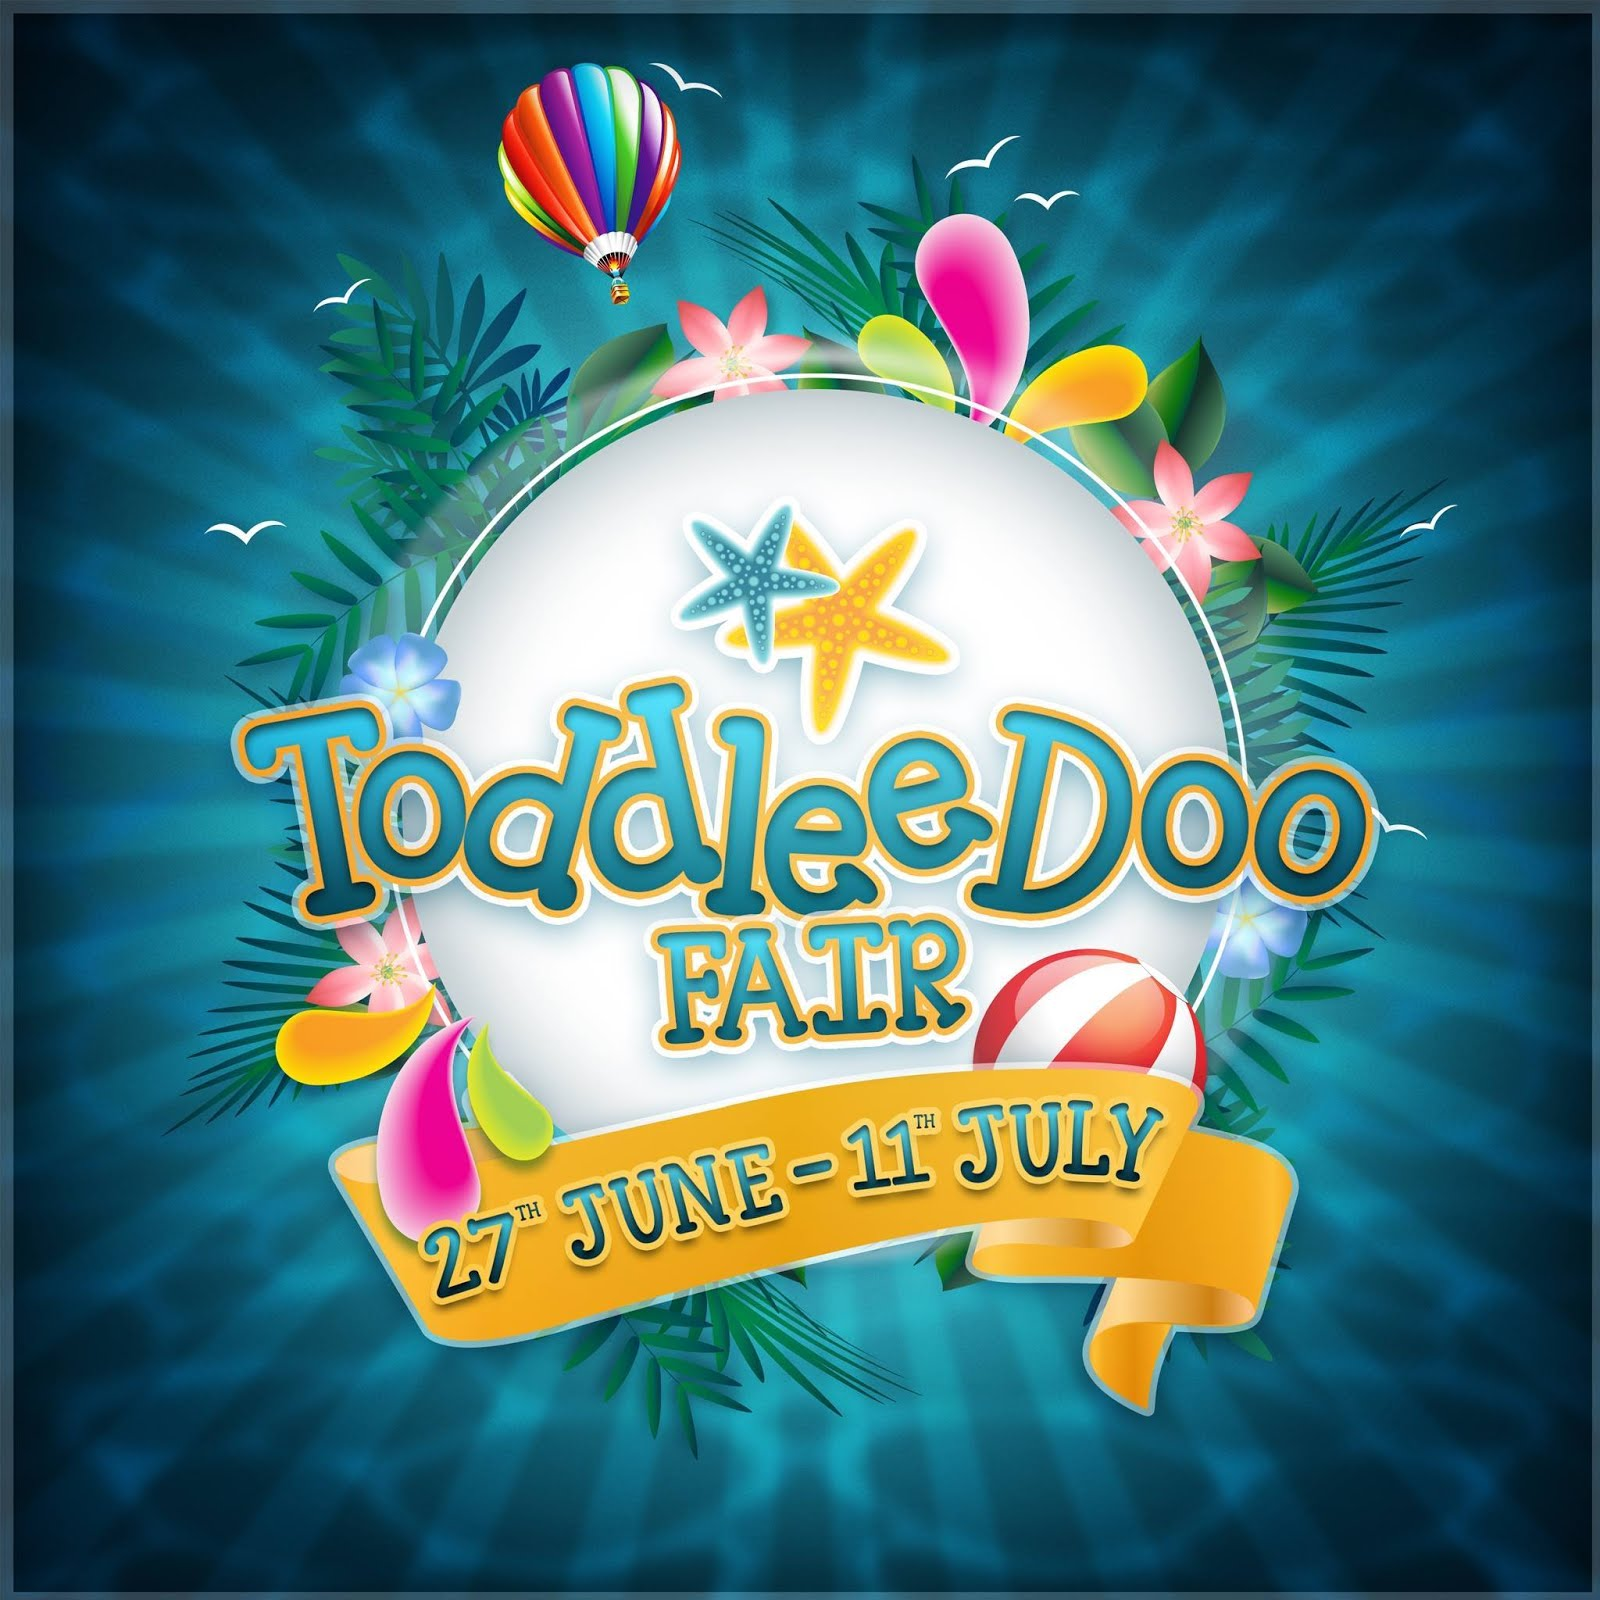 The Toddleedoo Fair